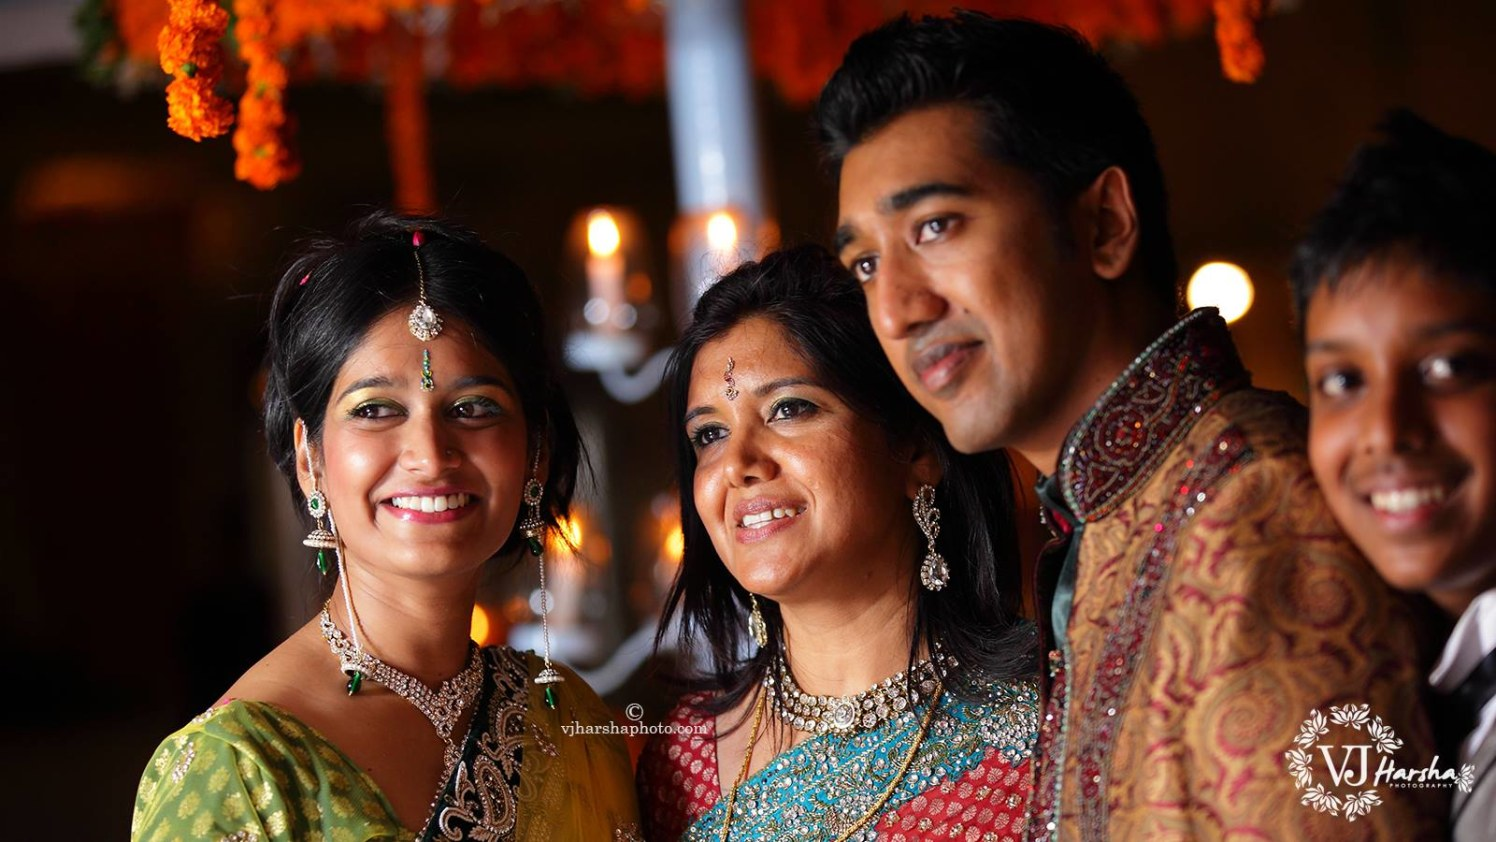 A Smiling Picture with the Family by Vjharsha Photography Wedding-photography | Weddings Photos & Ideas